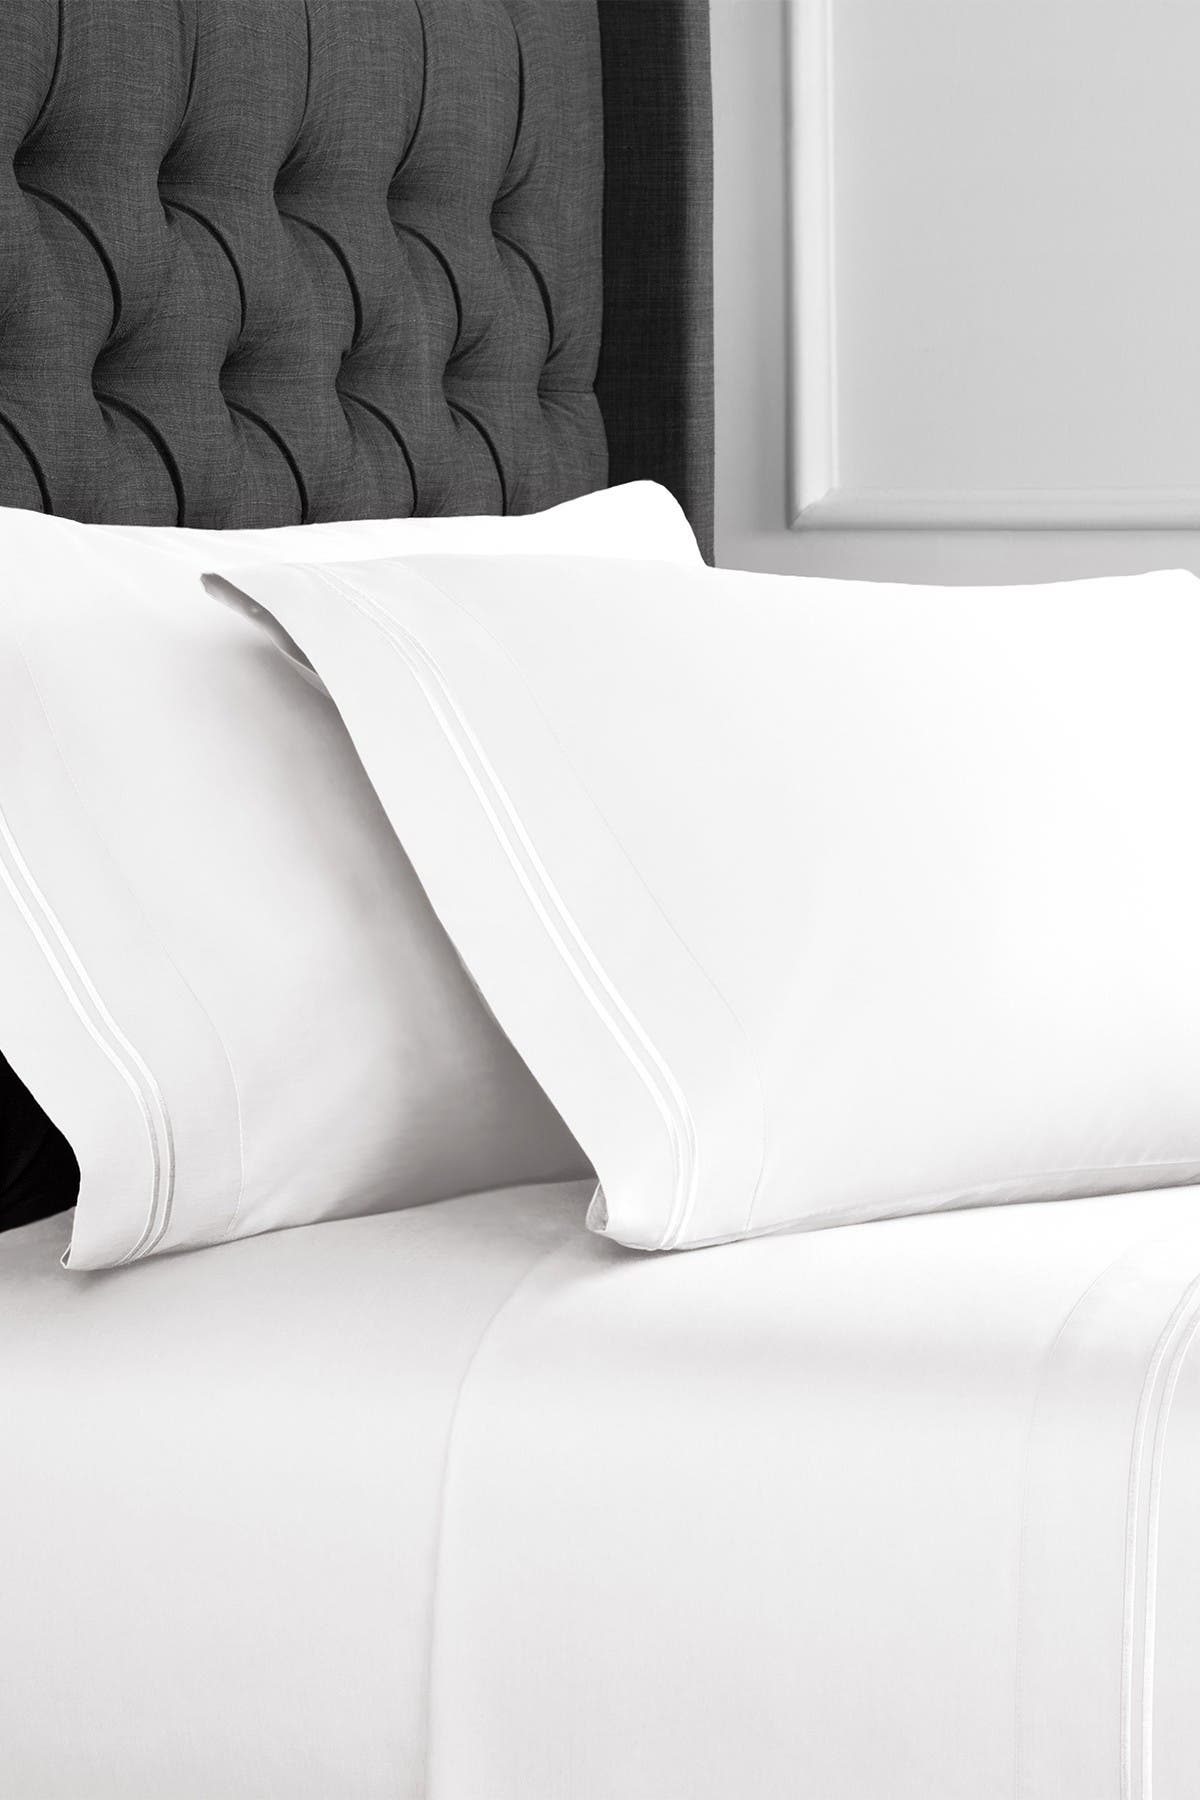 Image of Melange Home Queen 600 Thread Count Cotton Border Stripe Embroidered Sheet 4-Piece Set - White/White